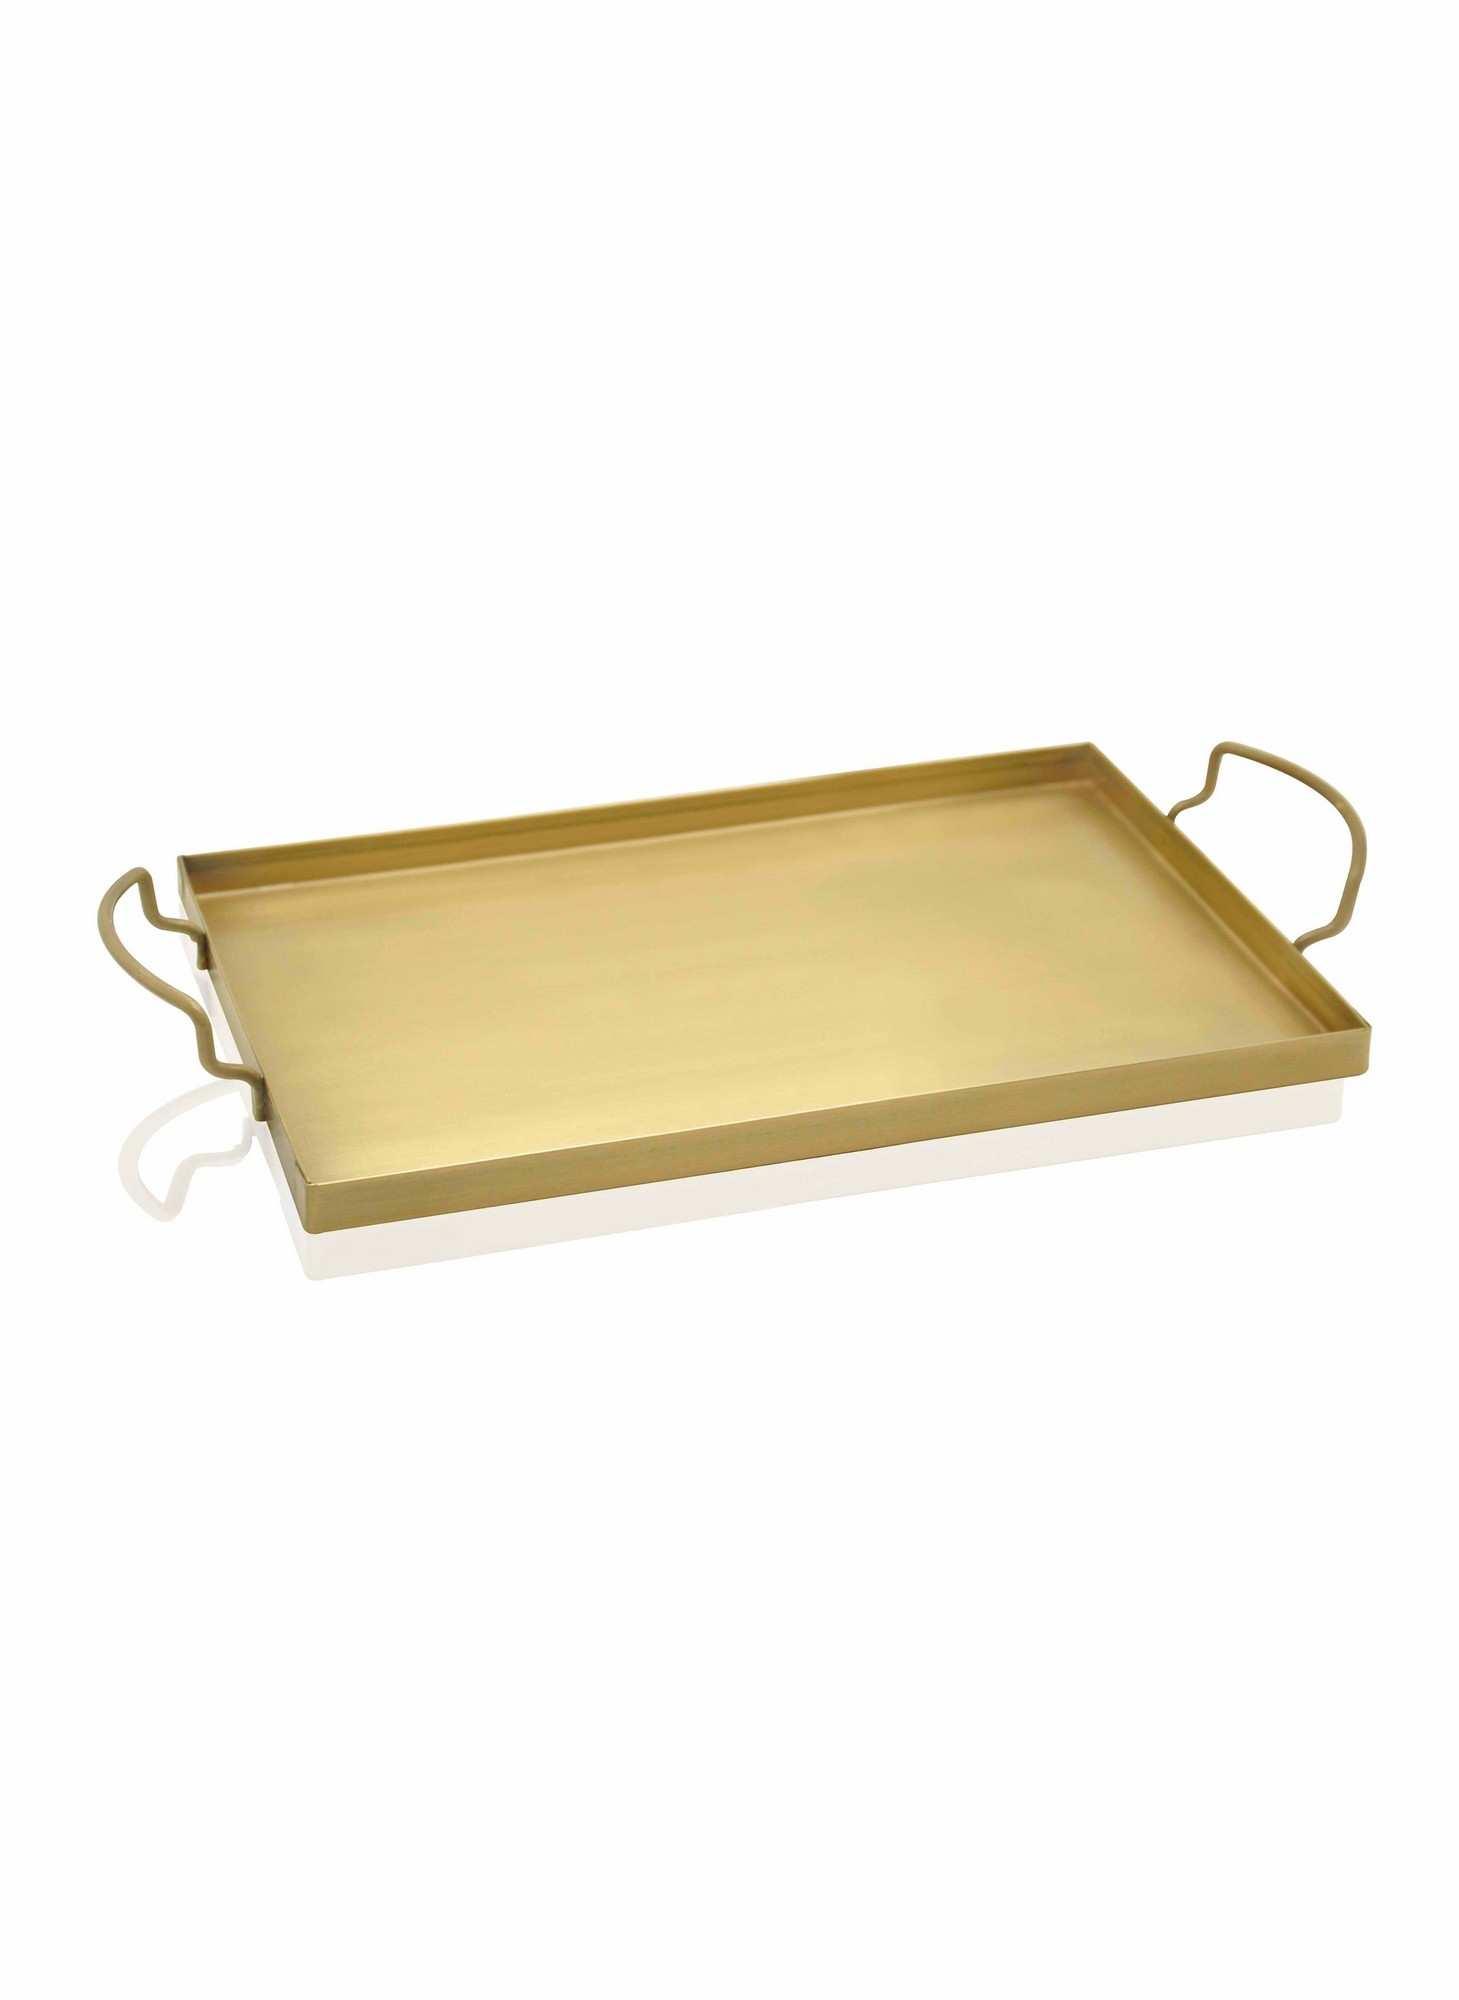 Tava pentru servire din metal, Goldie Large Auriu, L43xl25xH1 cm imagine